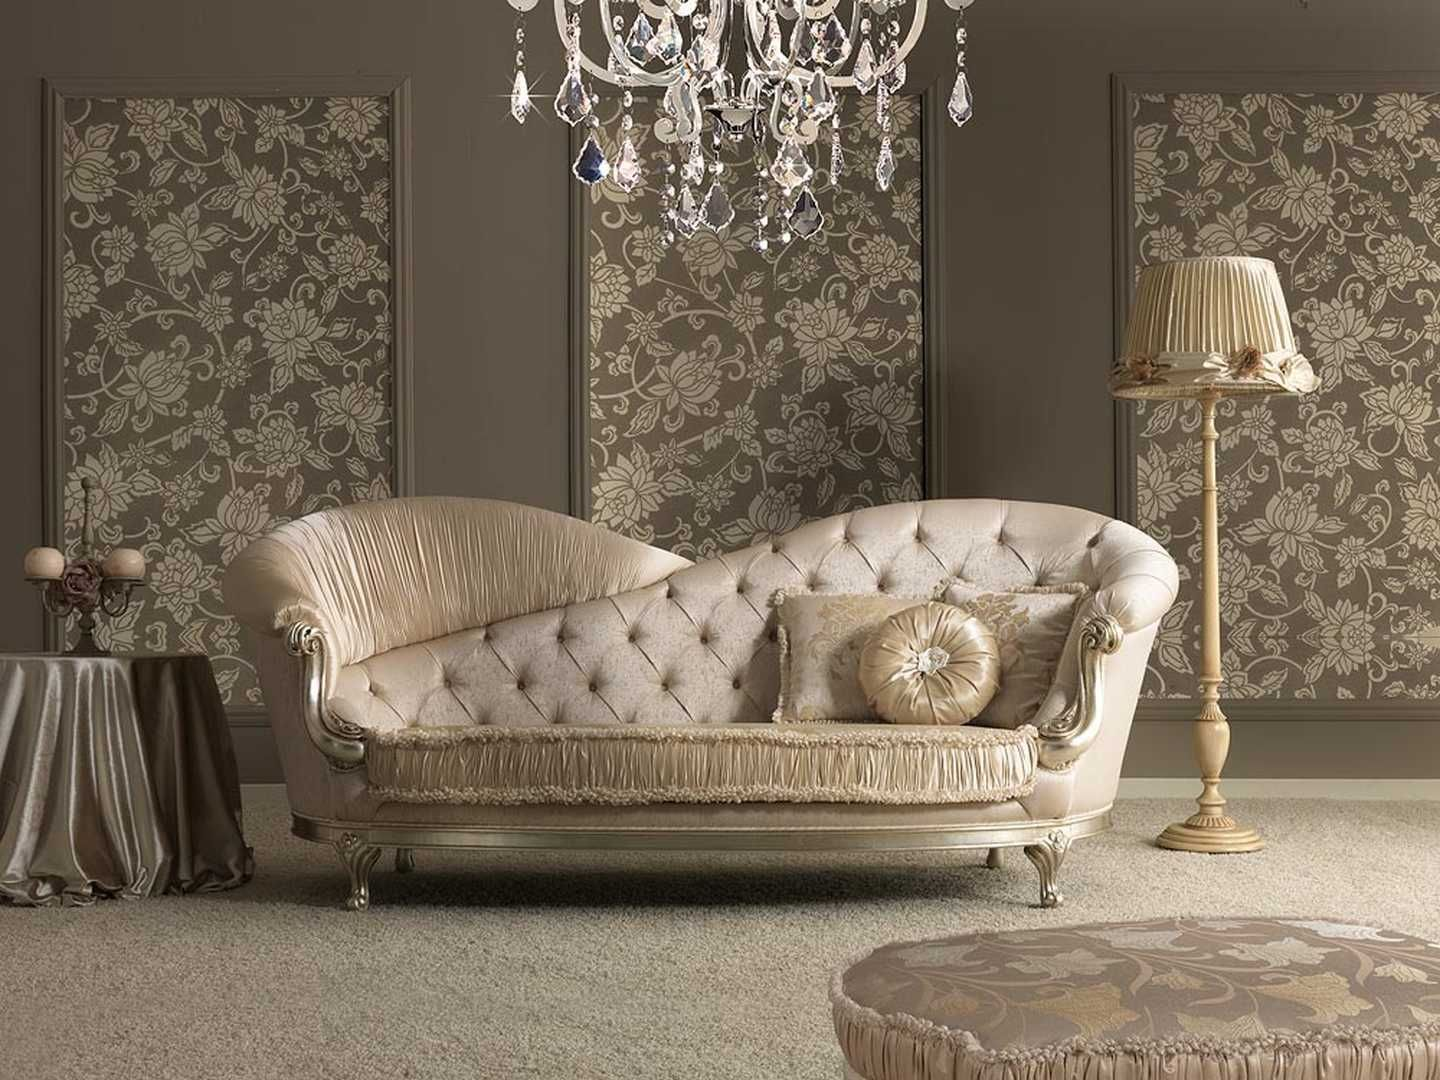 silvy italian sofa luxury sofa in a classic style mondital uk rh pinterest com